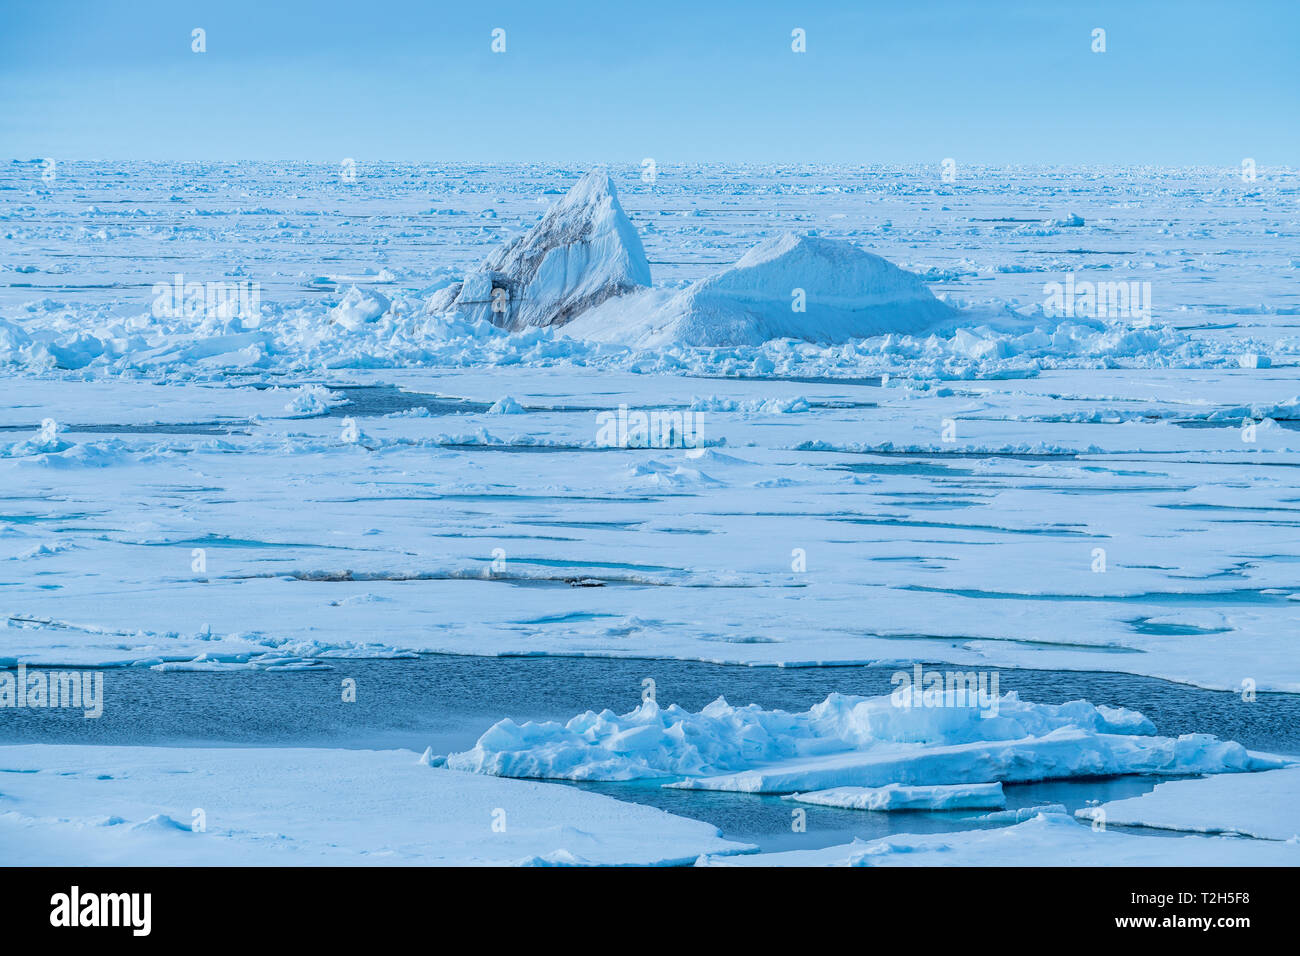 Ice bergs at North Pole, Arctic - Stock Image